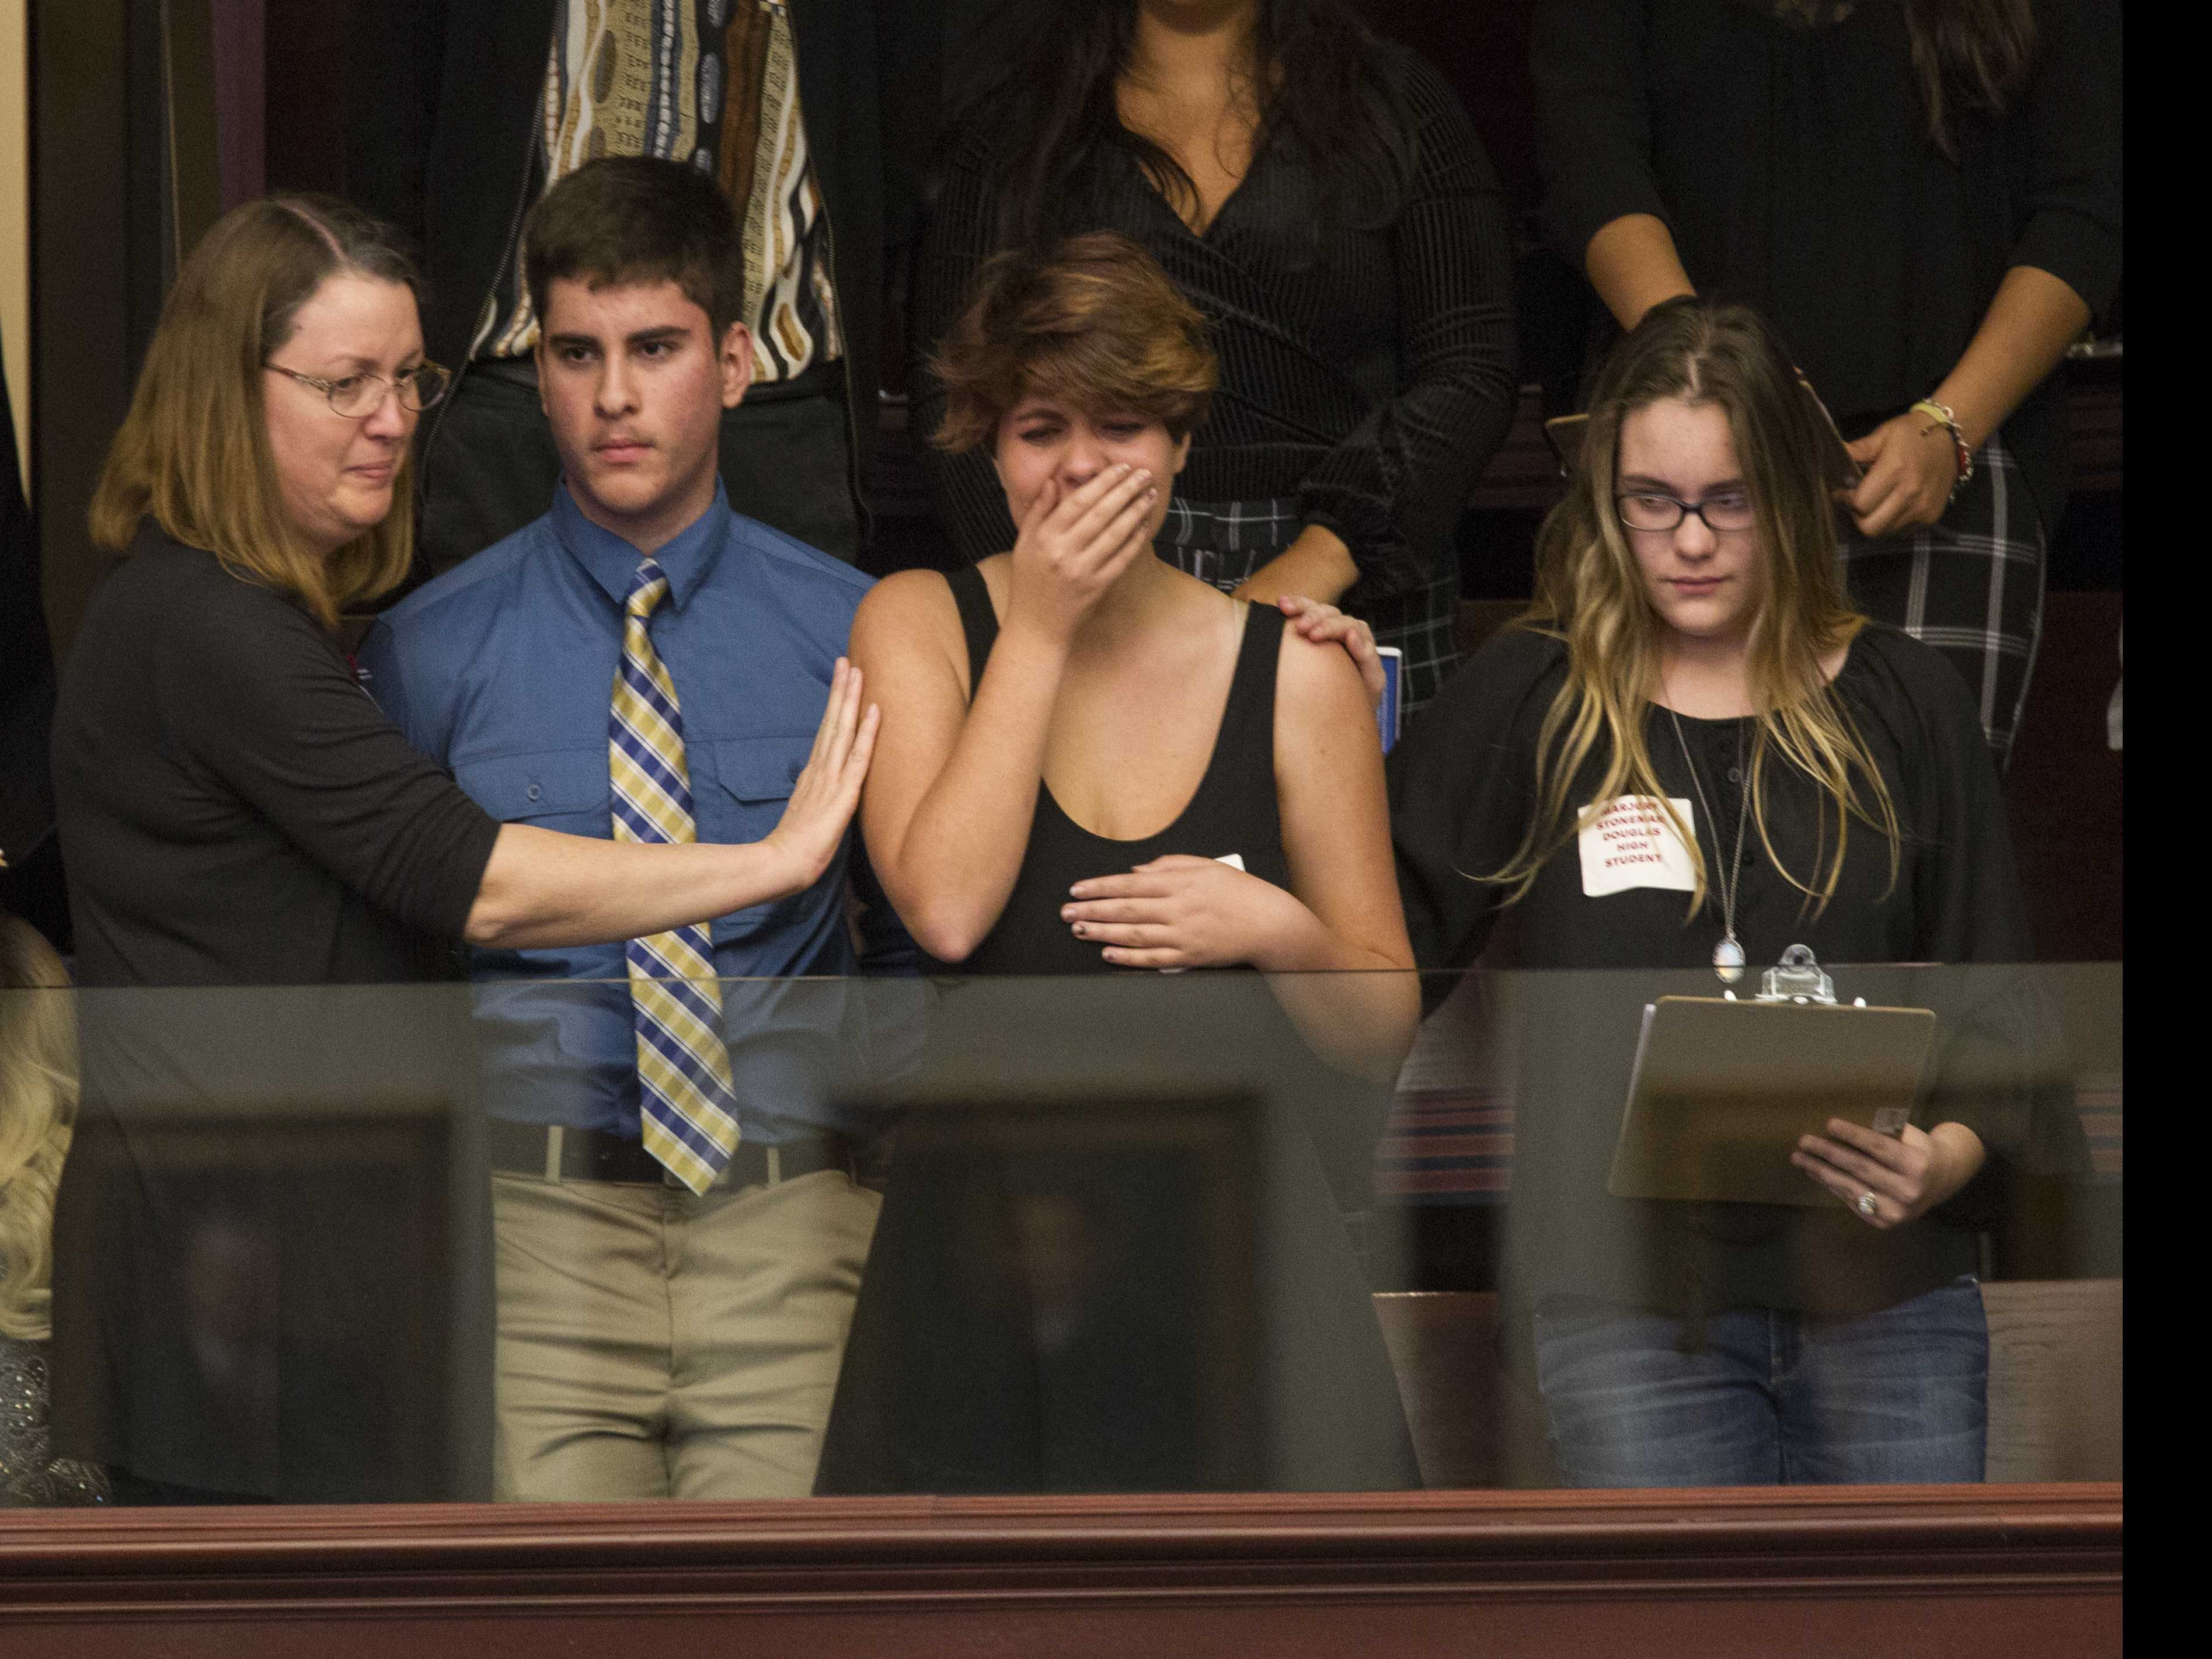 Florida Shooting Survivors in Capital, Demand Action on Guns